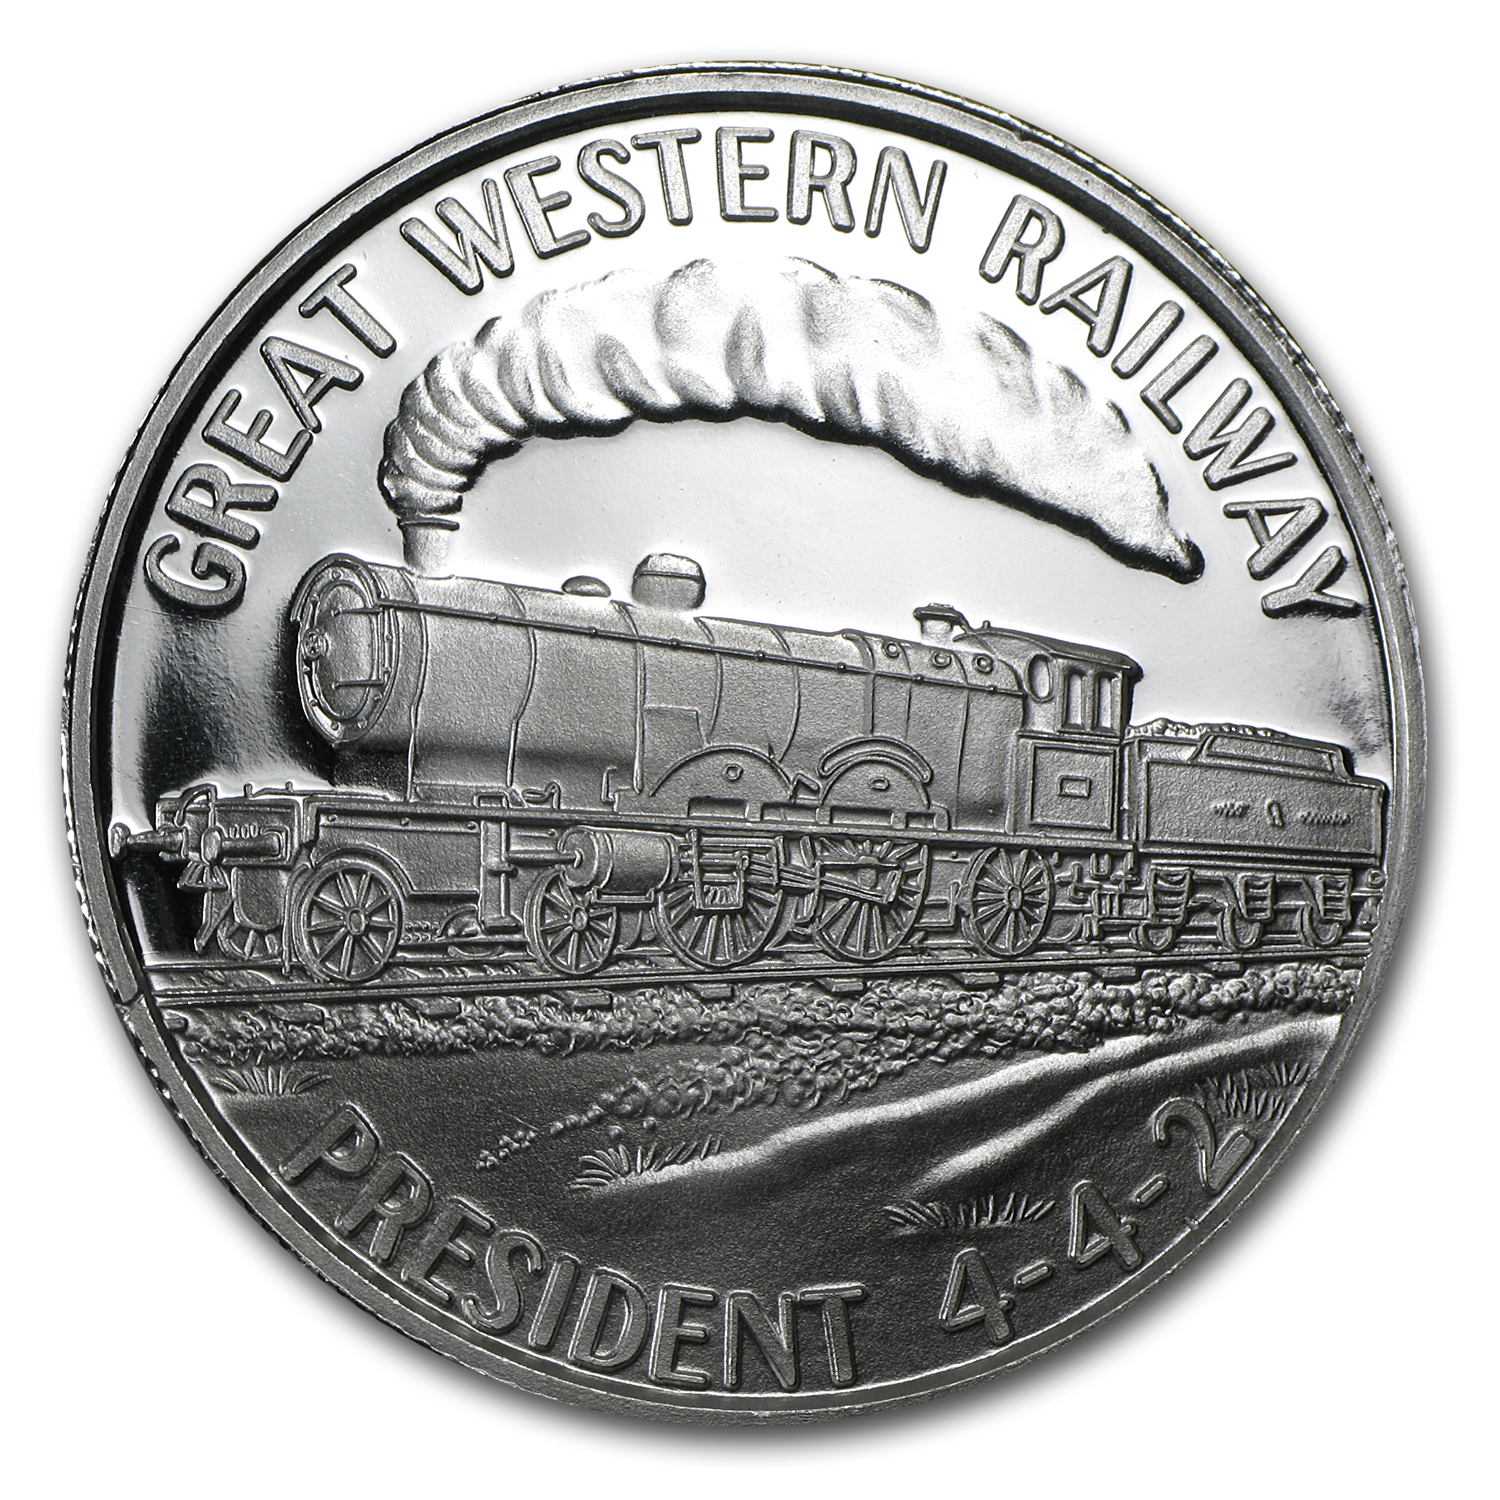 (5) 1 oz Silver Round - Steam Locomotive (5 pc Set)